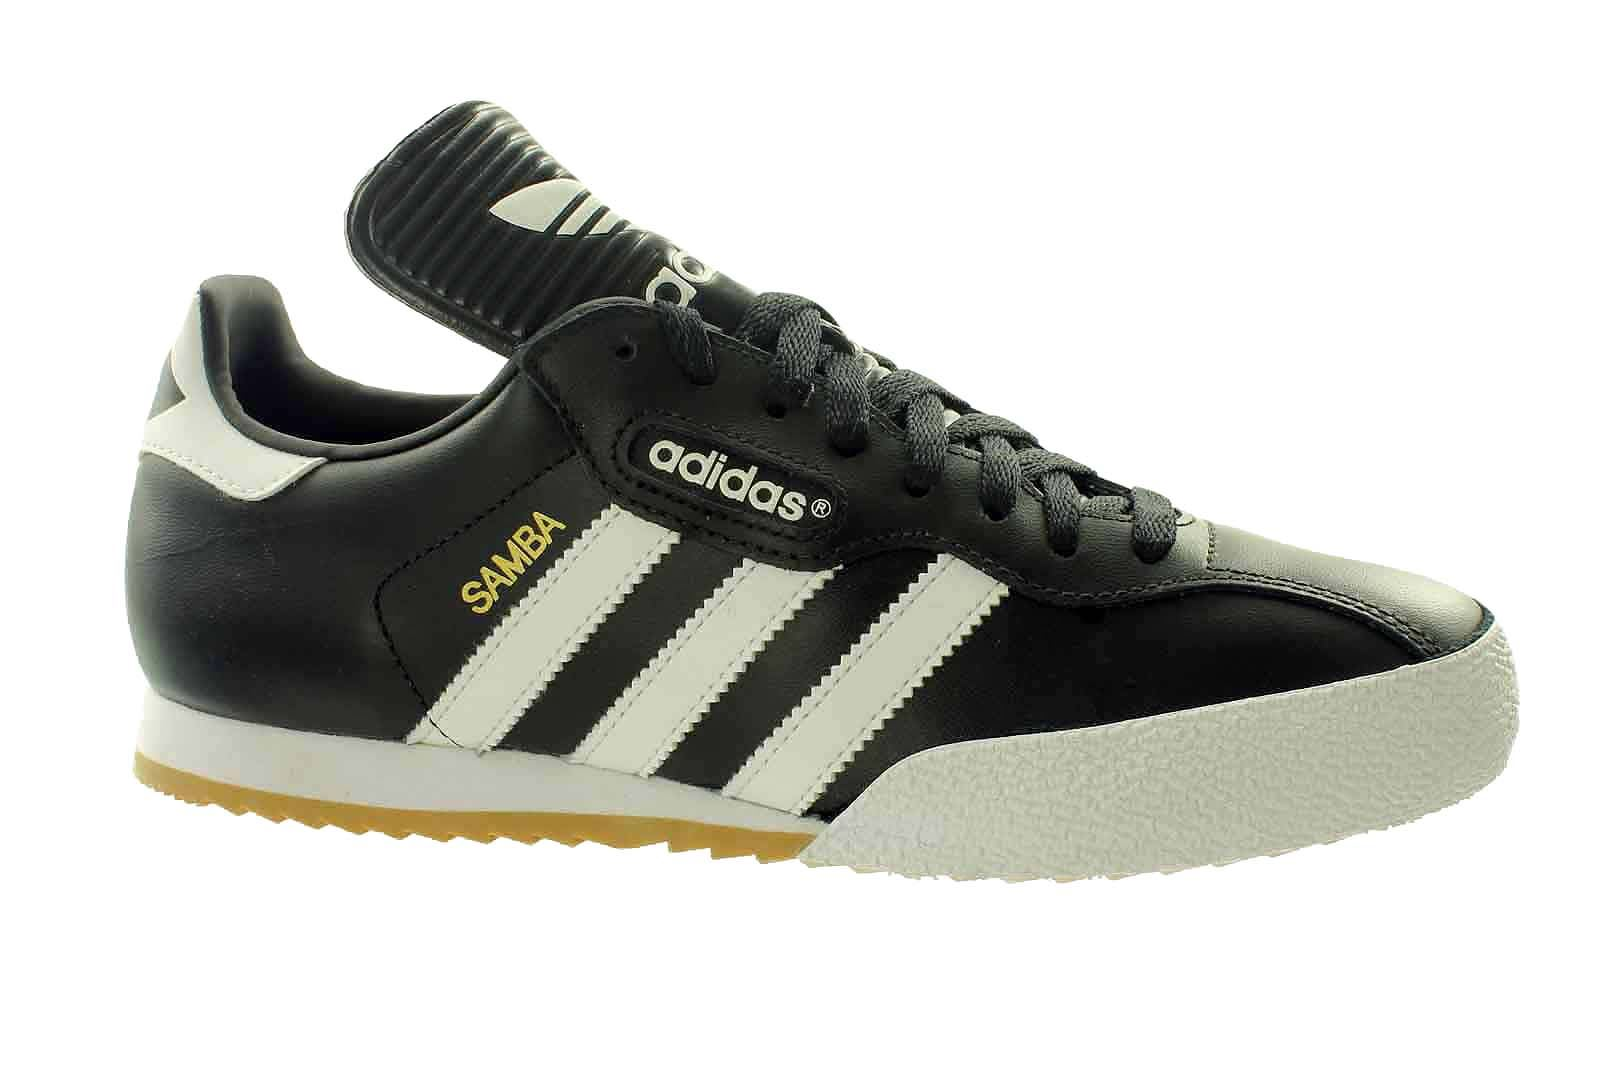 adidas Samba Suede and Leather Sneakers Gr. UK 8.5 2raT7